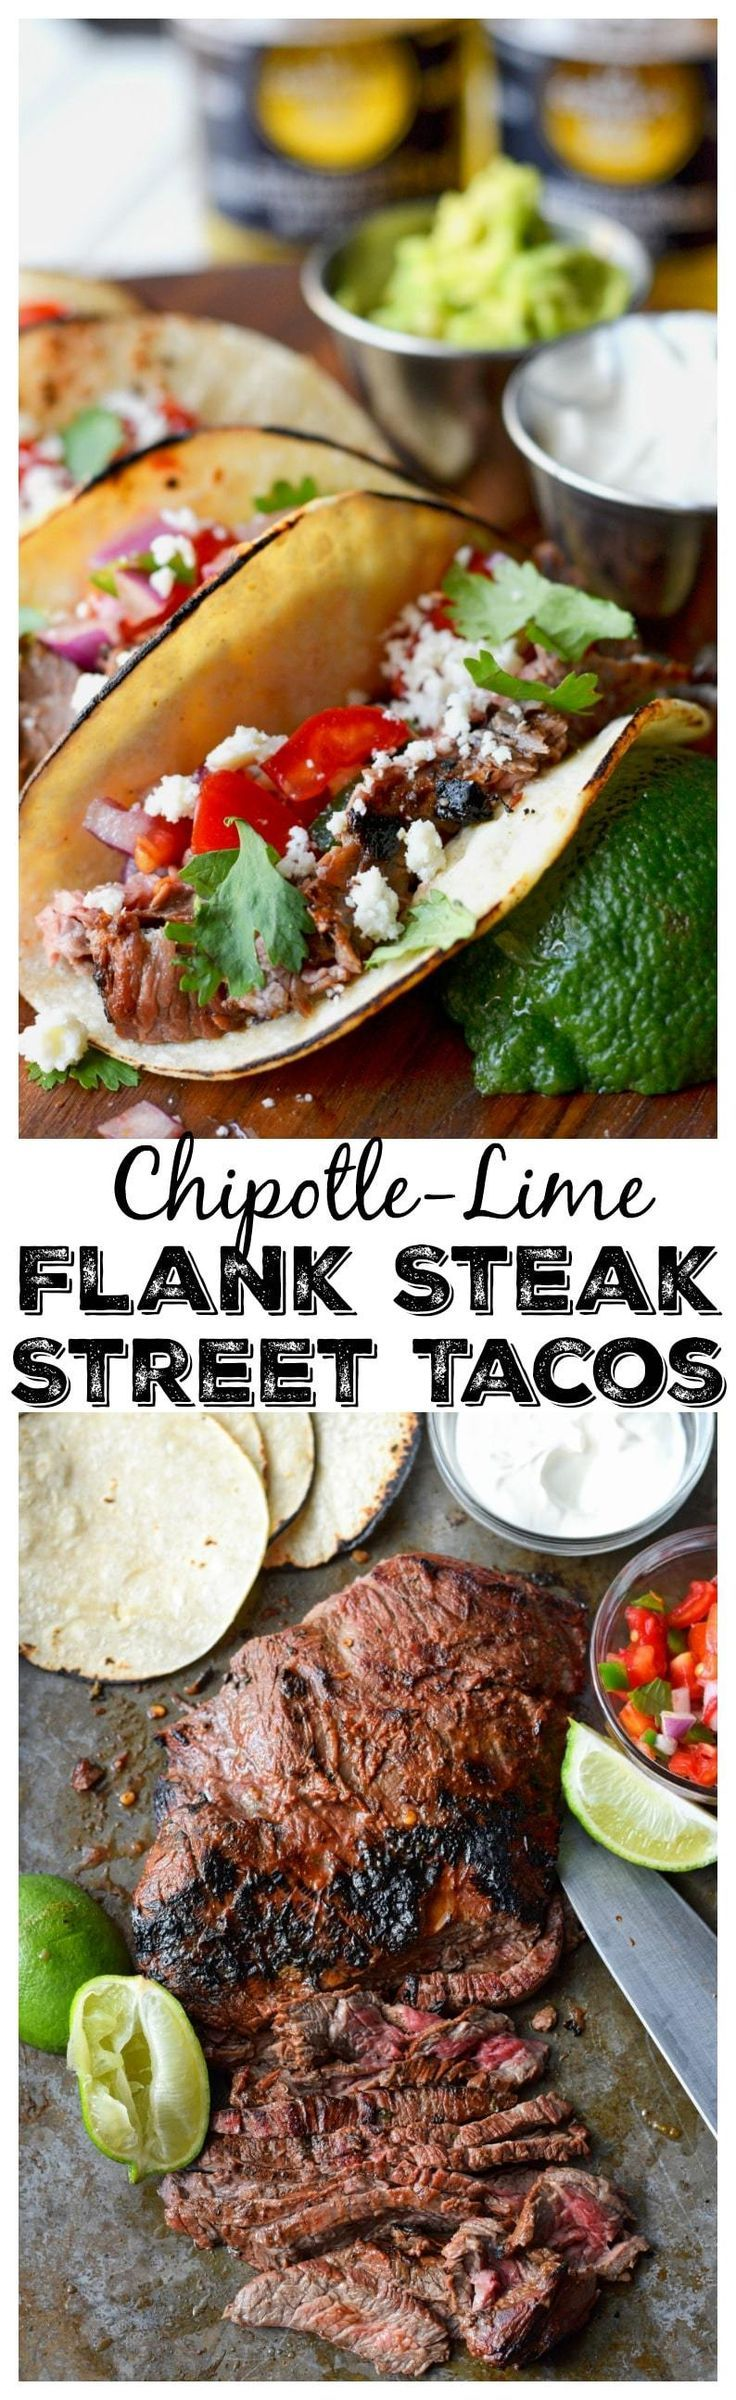 This Chipotle-Lime Flank Steak Street Taco recipe is perfect for your next taco Tuesday! Topped with a fresh pica de gallo that puts these babies over the top!